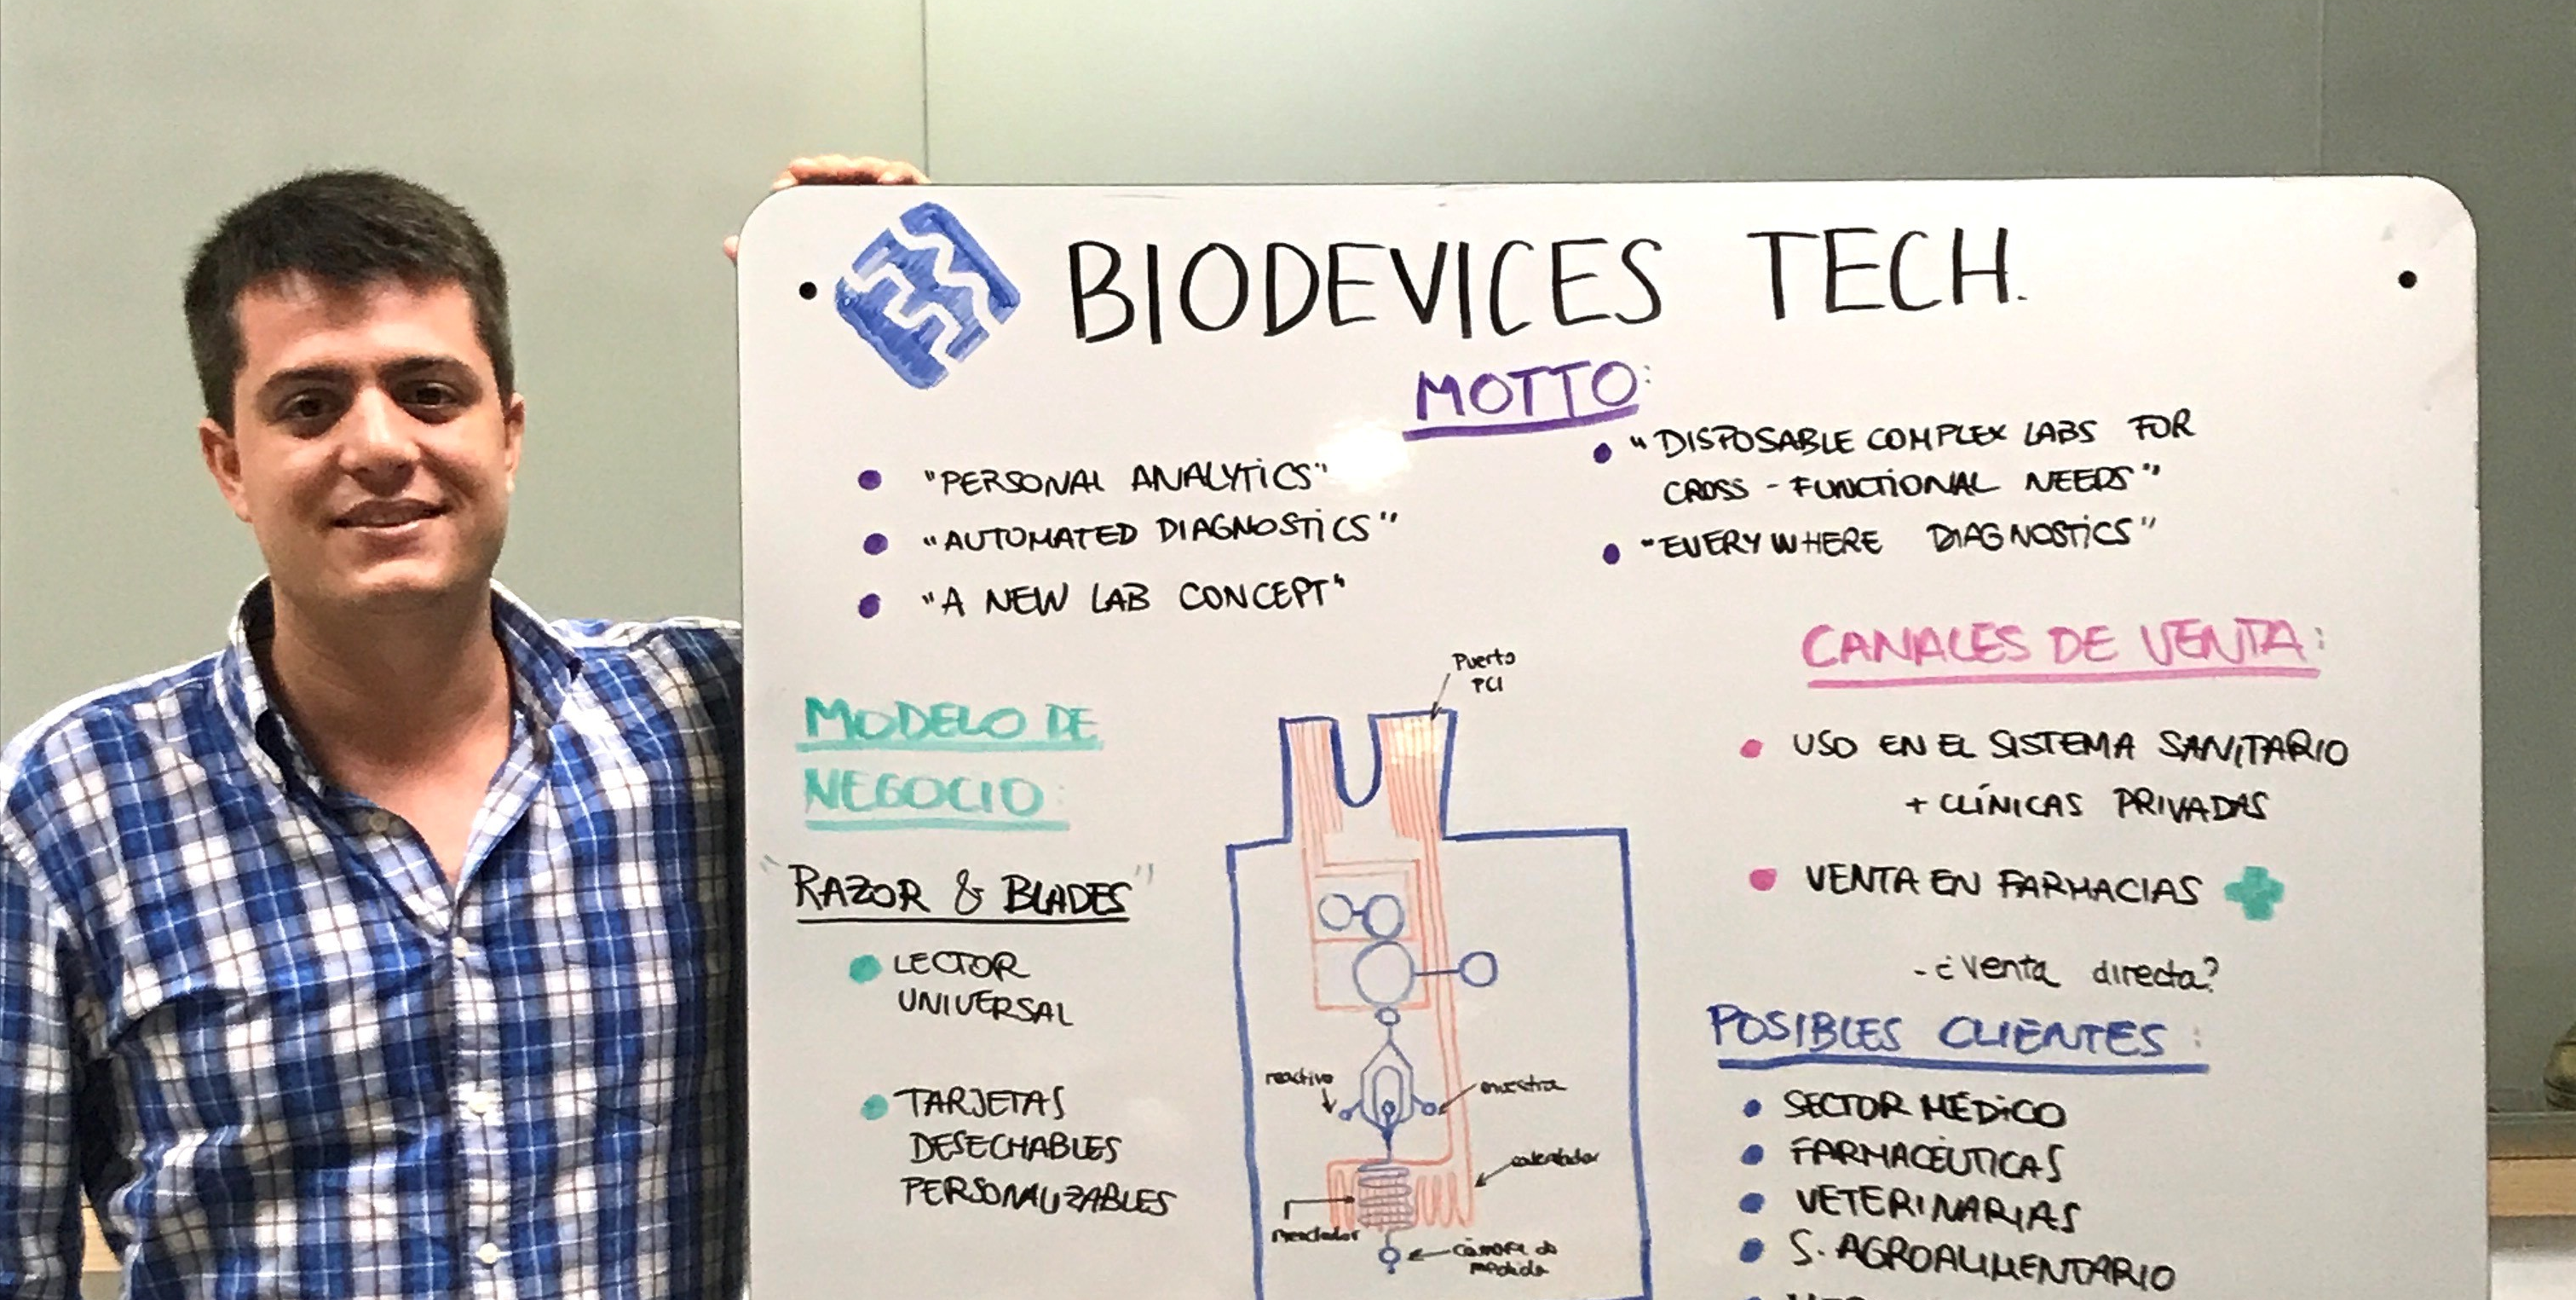 Biodevices Techonologies